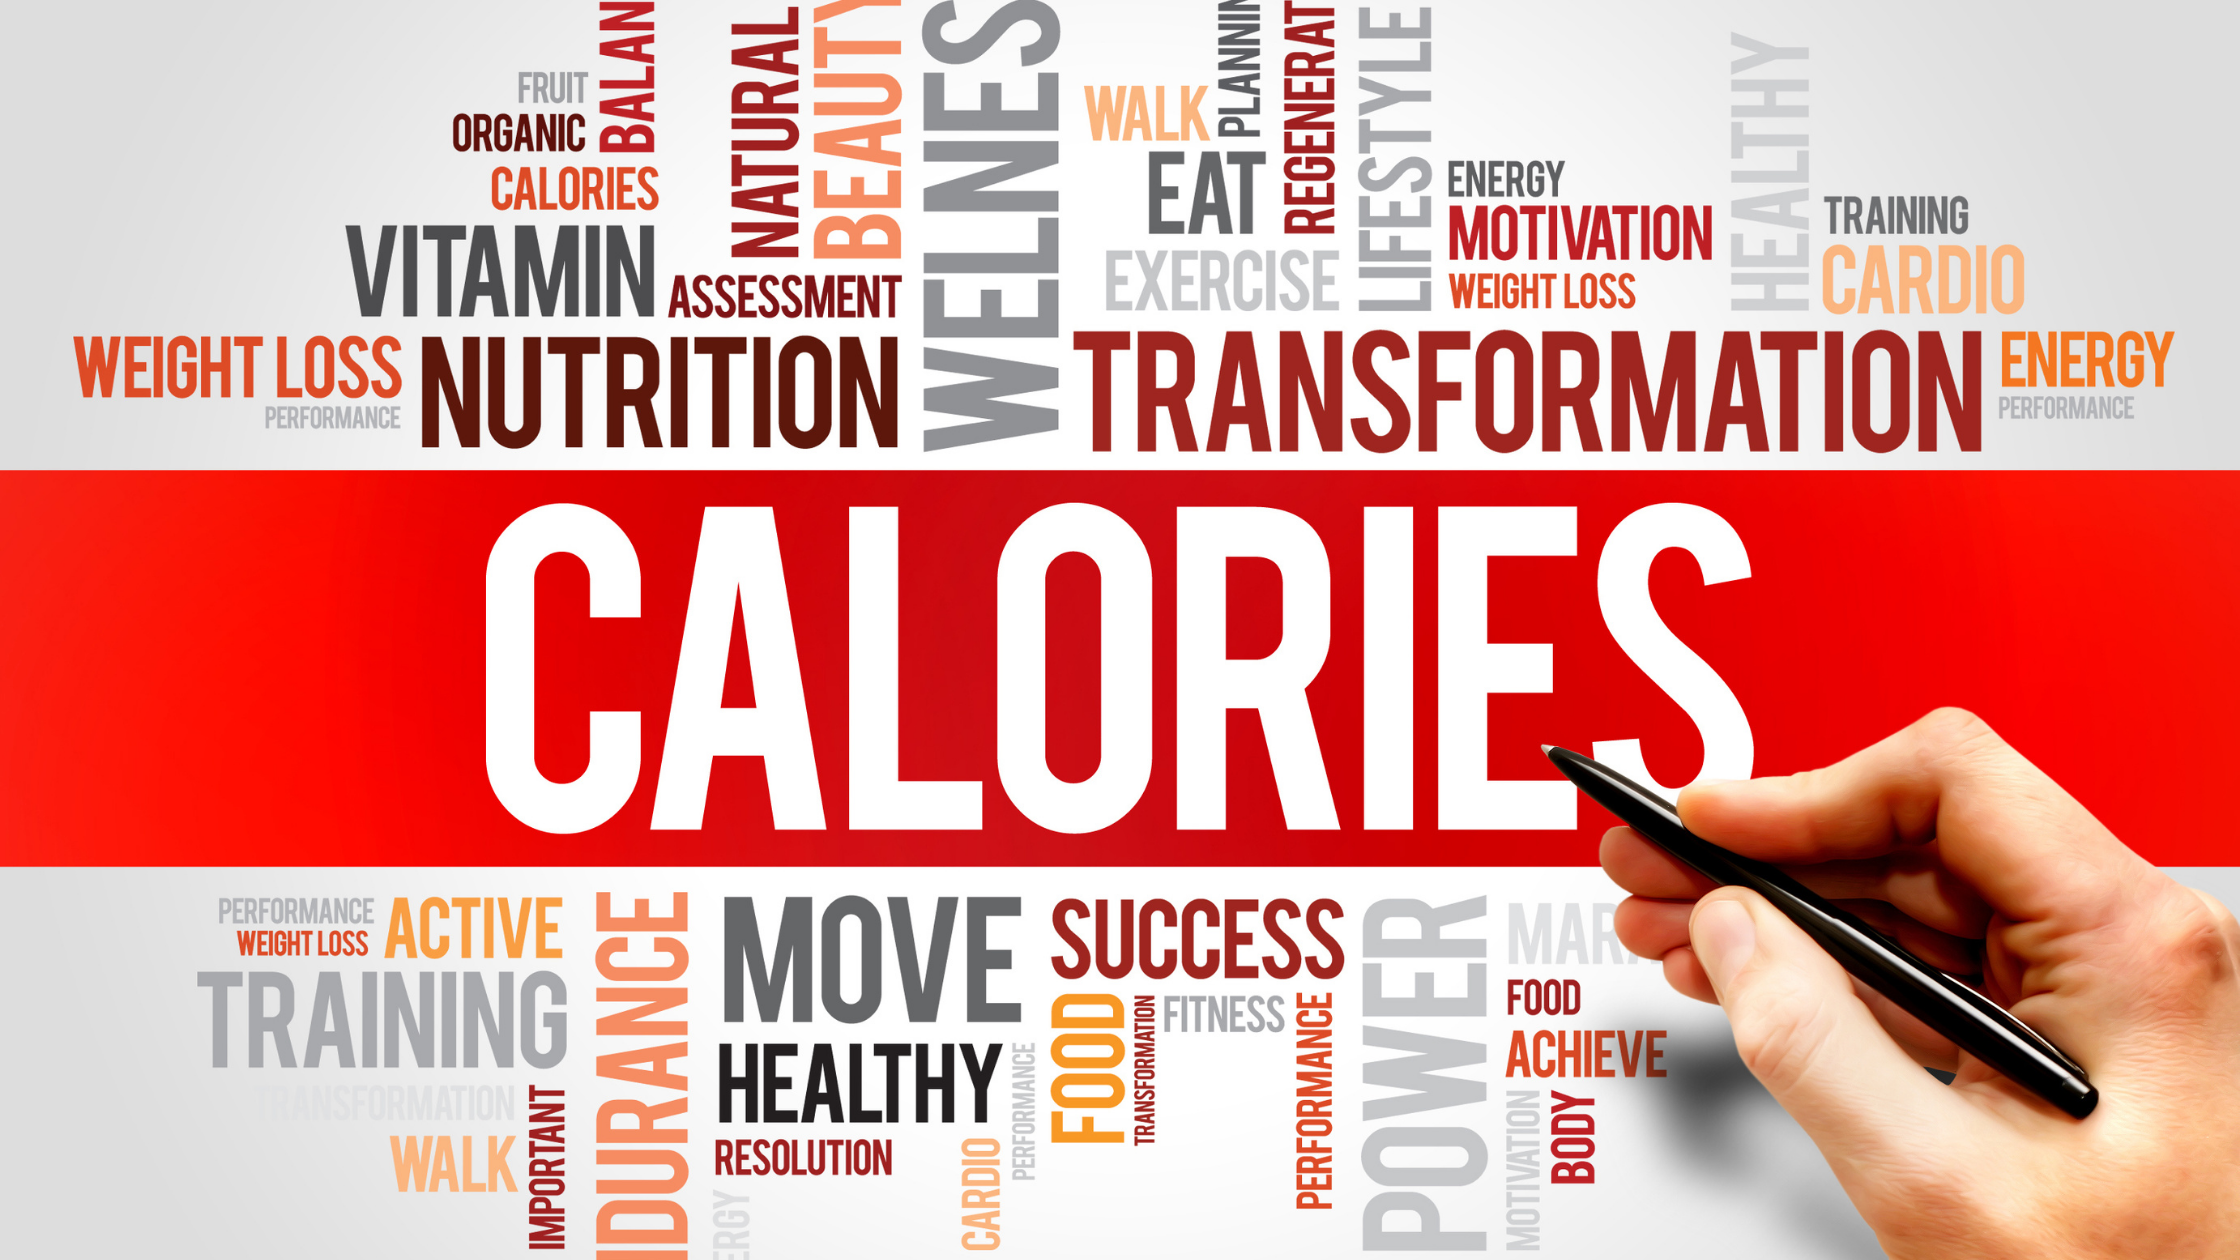 Why Calories Should Be Your #1 Focus for Weight Loss